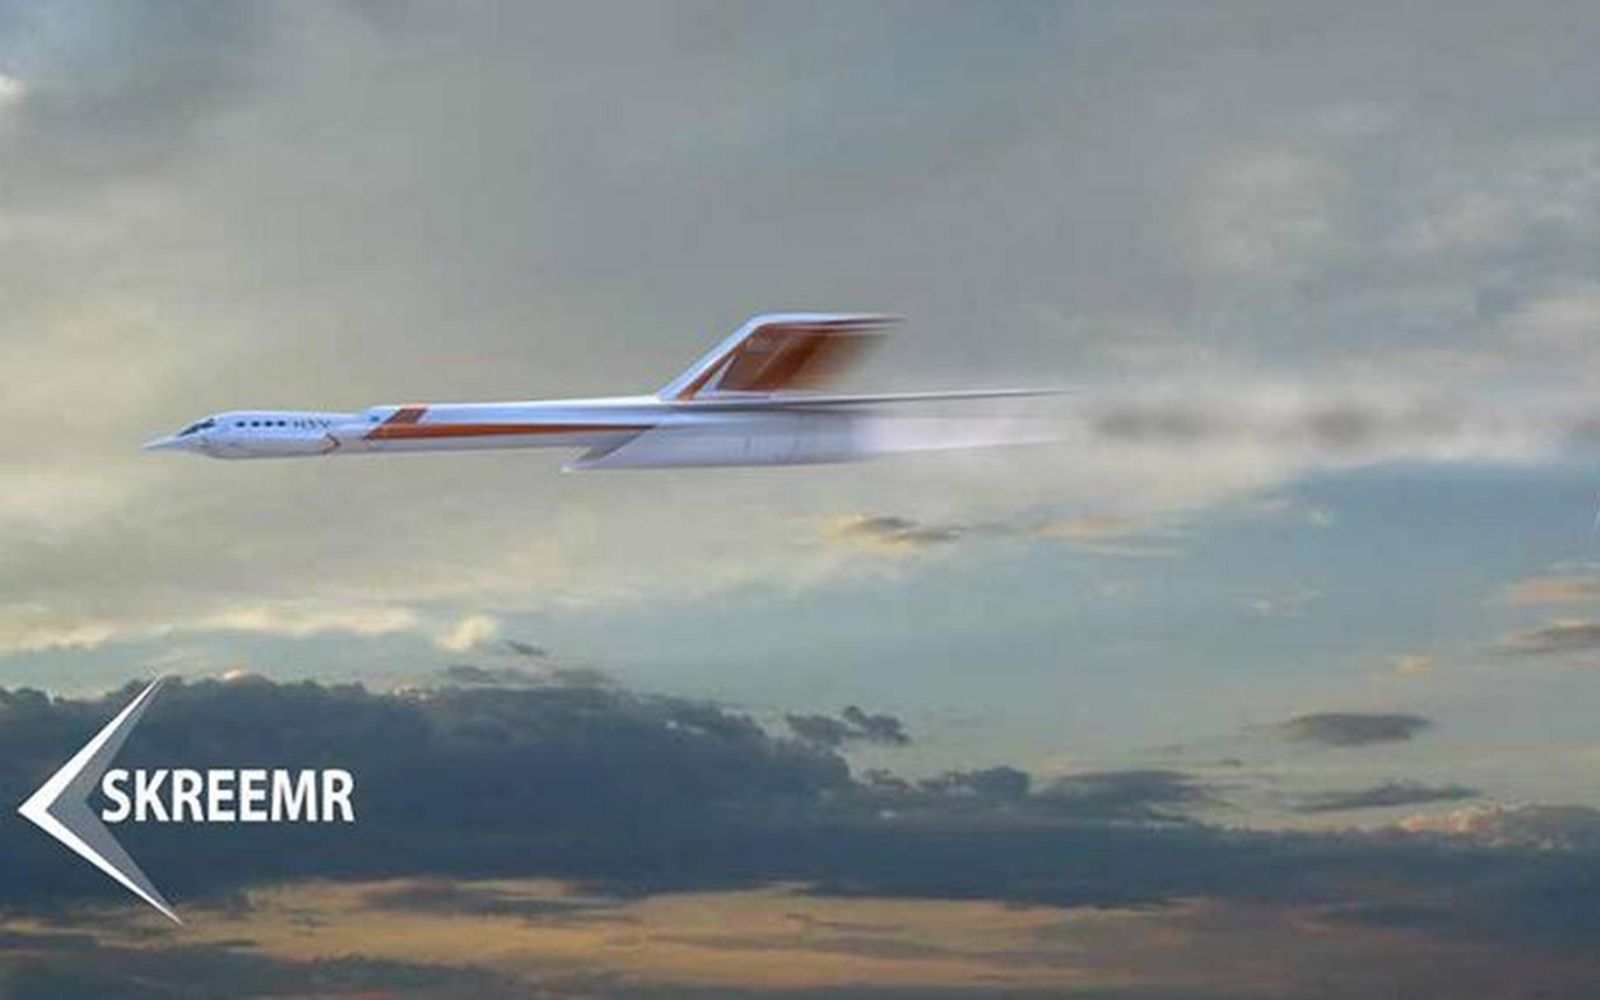 The Skreemr Jet Could Fly You From New York City to London in 30 Minutes